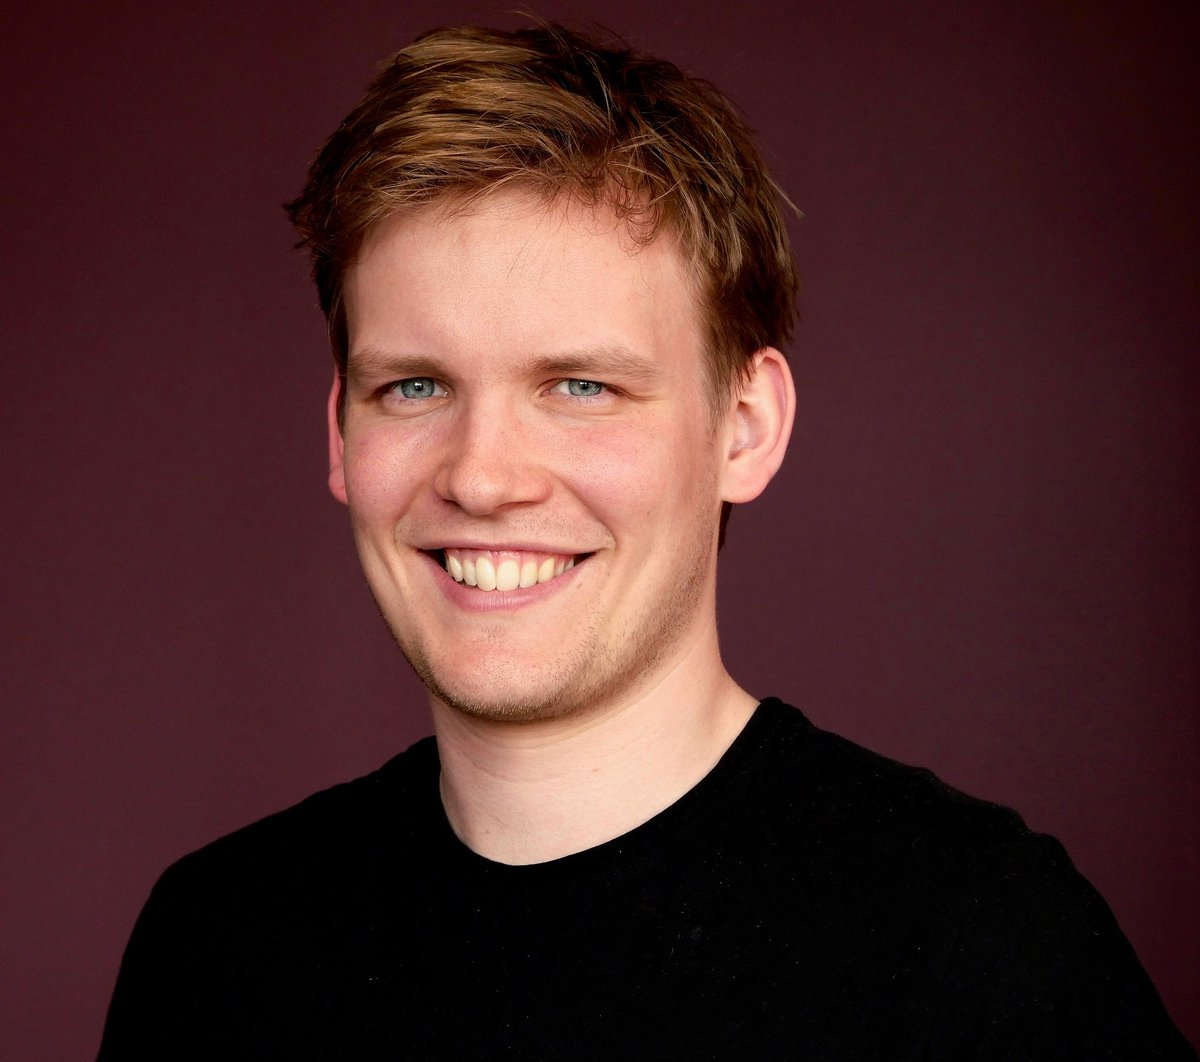 Anders Krohn left Oxford University to take his startup to the next level. Now he's raised $4.2m. Here's how he did it: https://t.co/v8EJTQtYE8